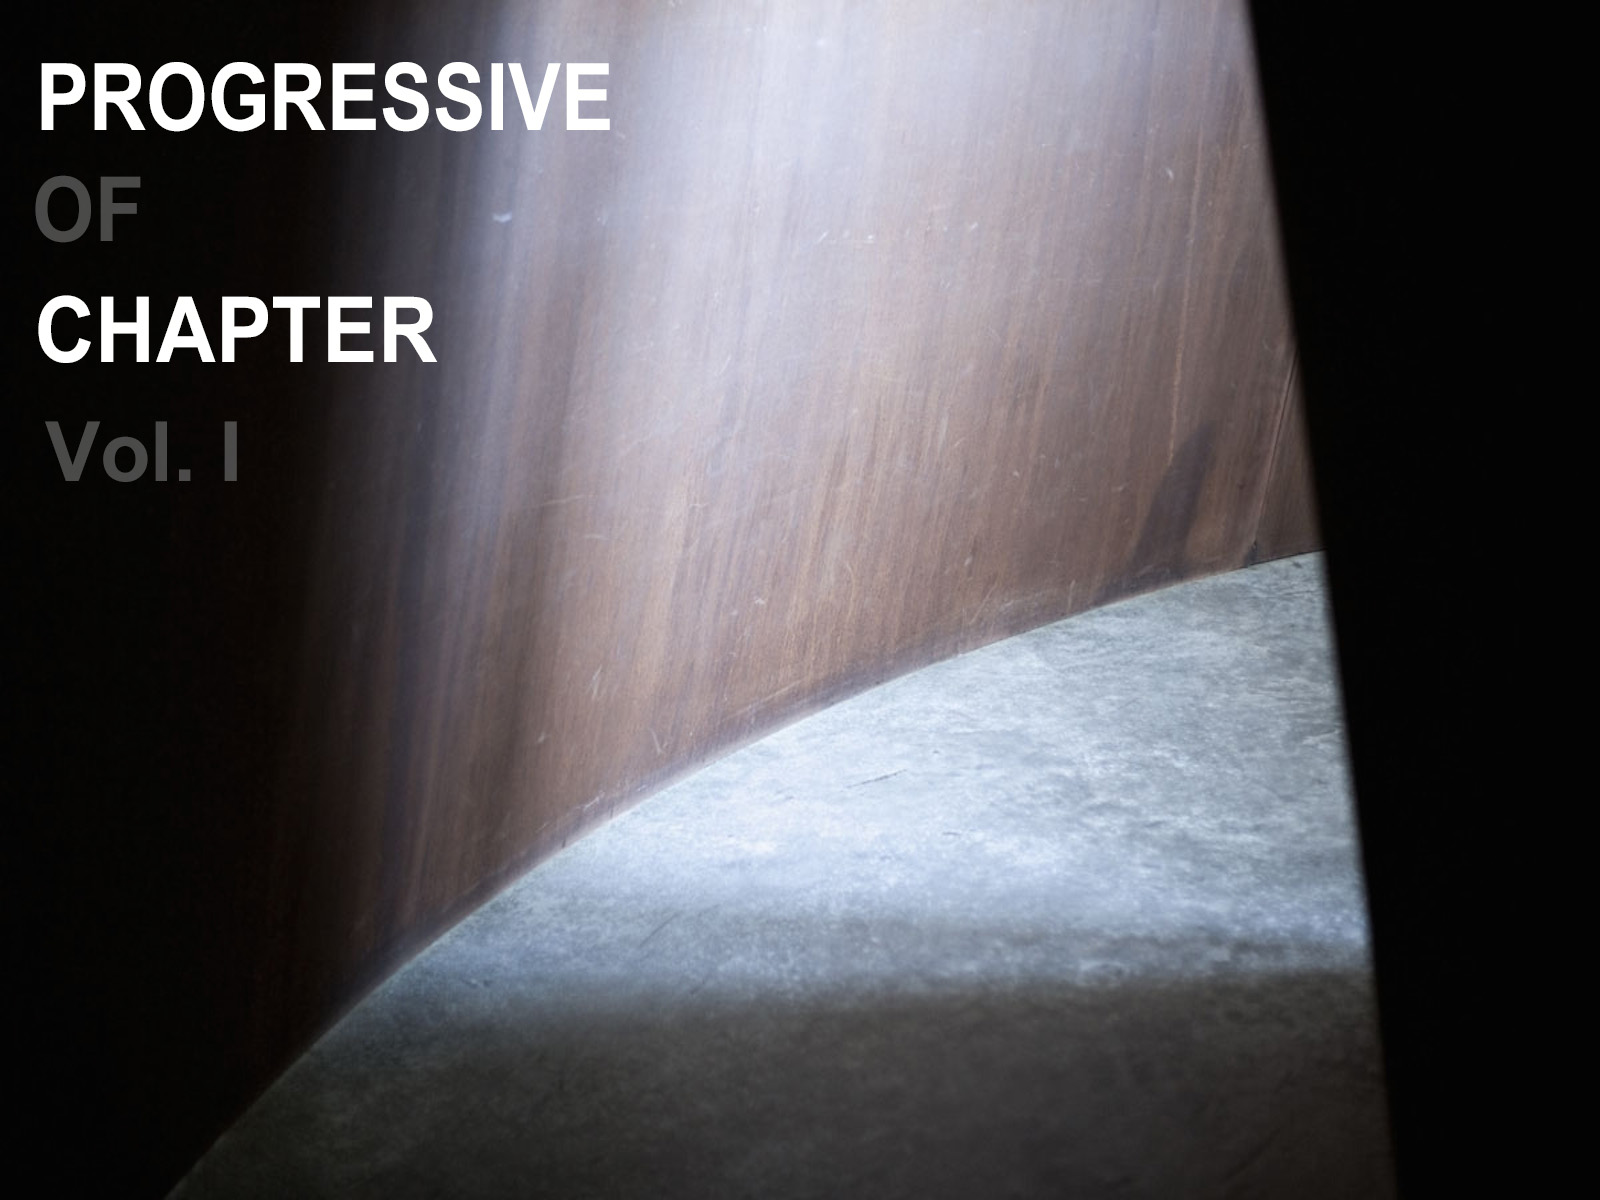 PROGRESSIVE OF CHAPTER Vol. I